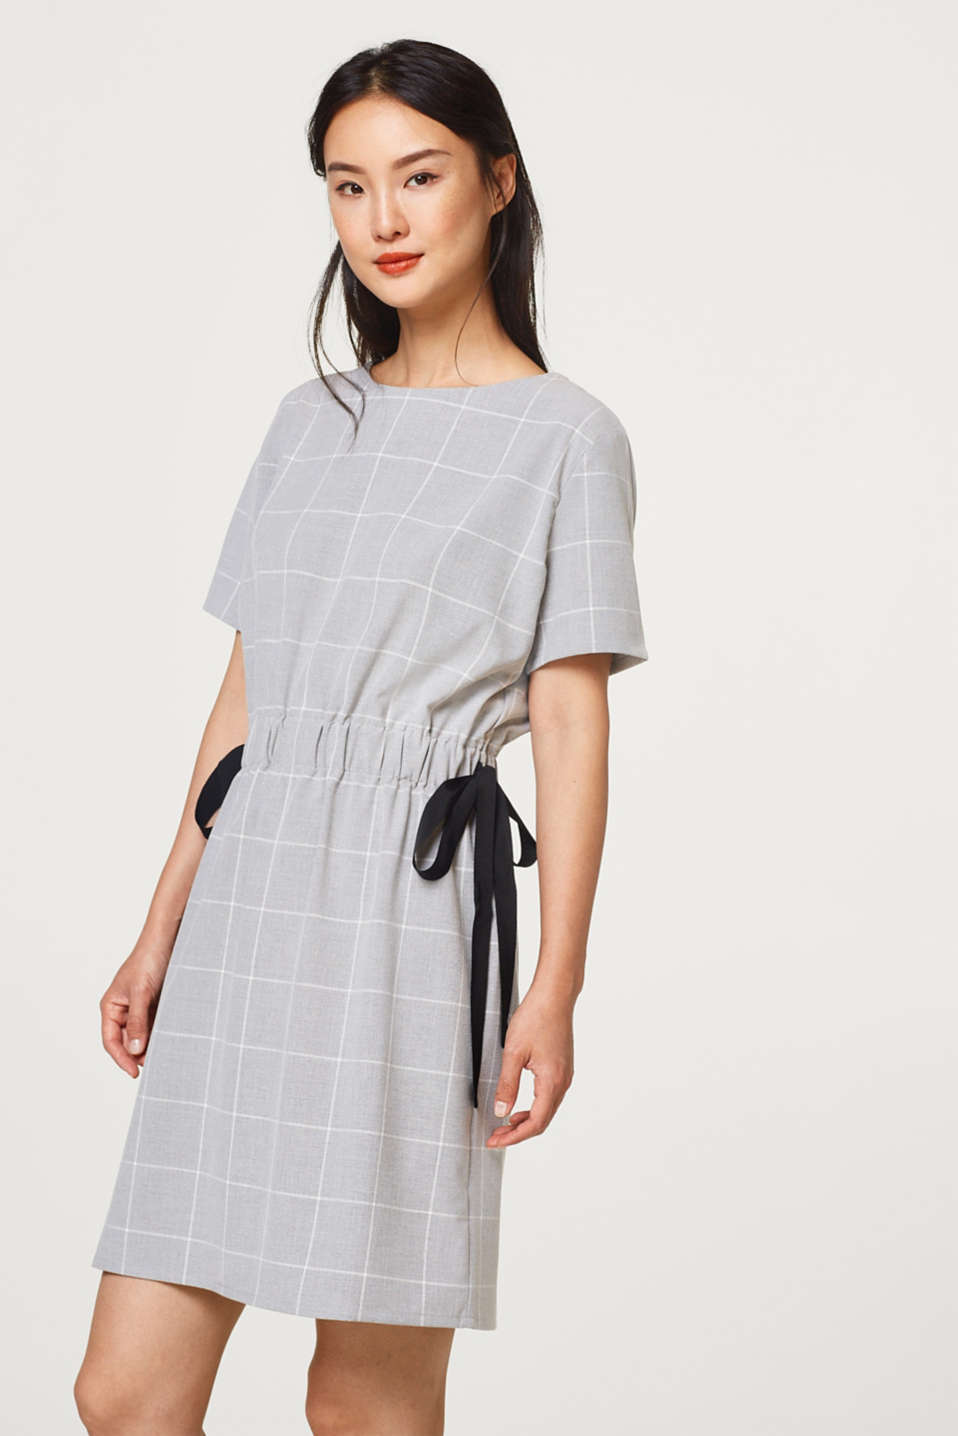 Esprit - Stretch dress with side bows